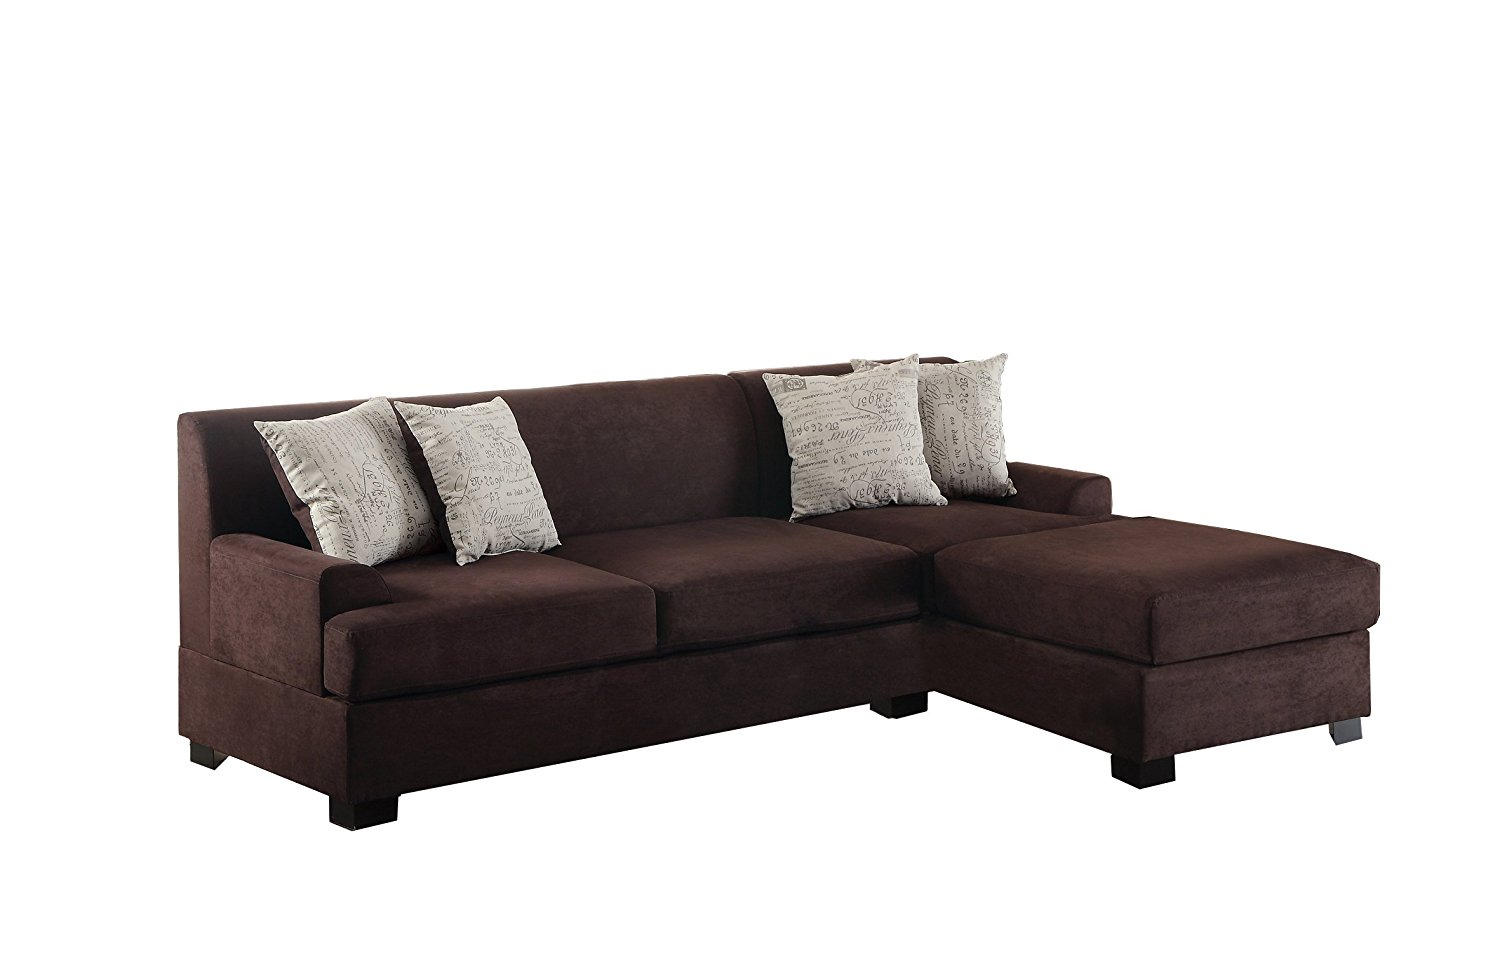 Poundex Bobkona Samuel Microsuede 3-Seat Reversible Sectional Sofa, Chocolate